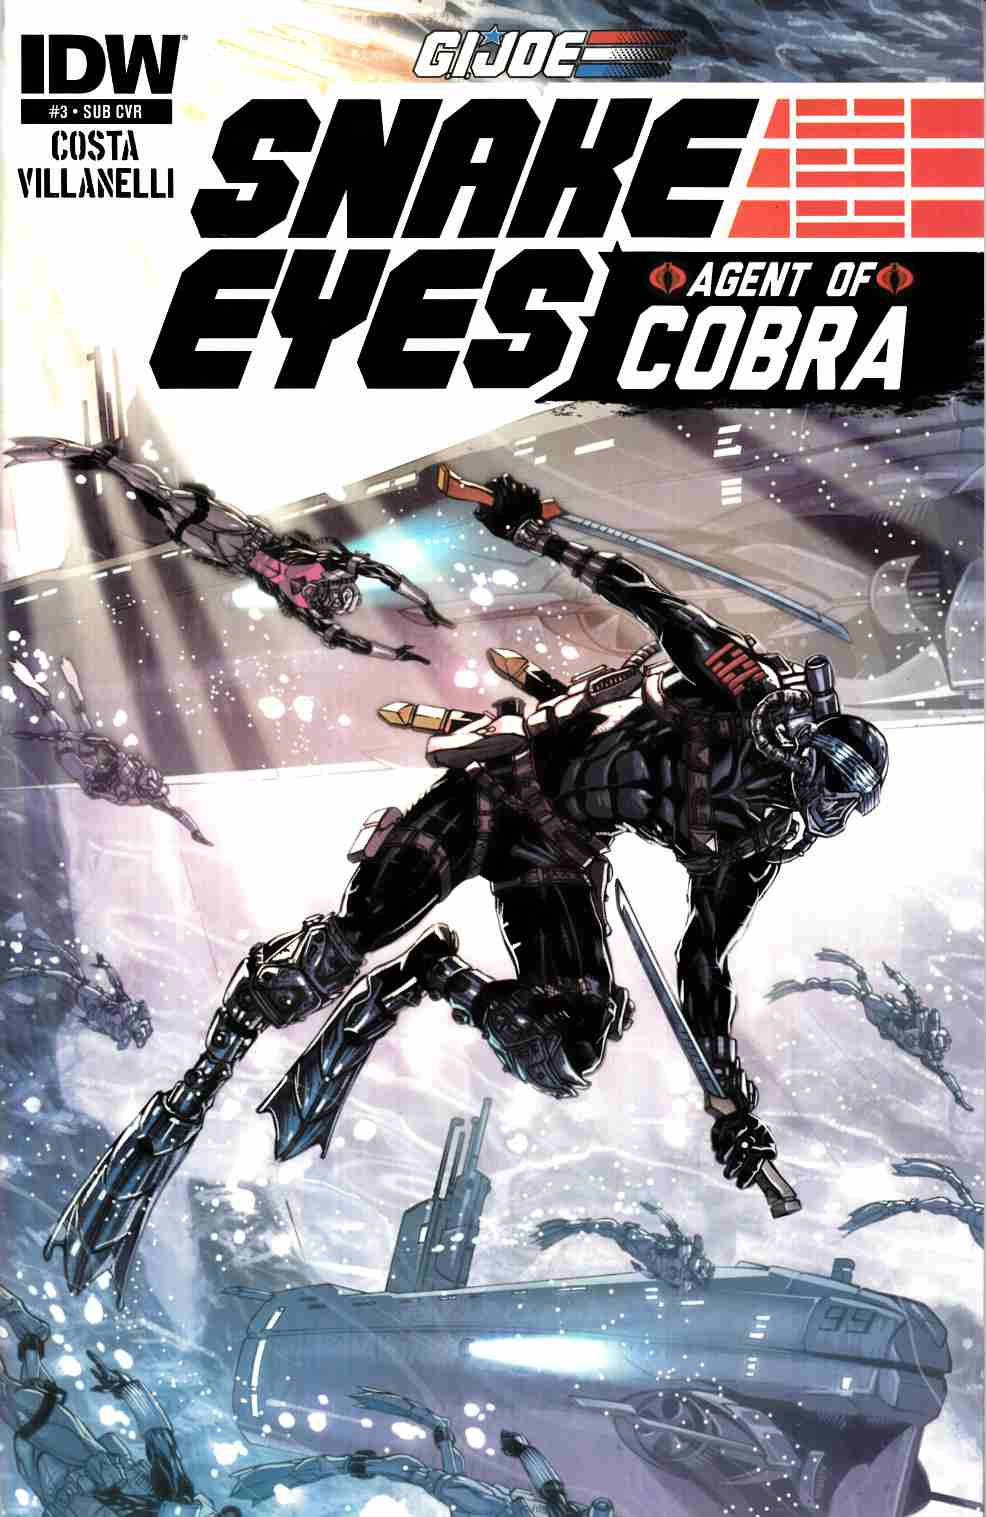 GI Joe Snake Eyes Agent of Cobra #3 Subscription Cover Near Mint (9.4) [IDW Comic]